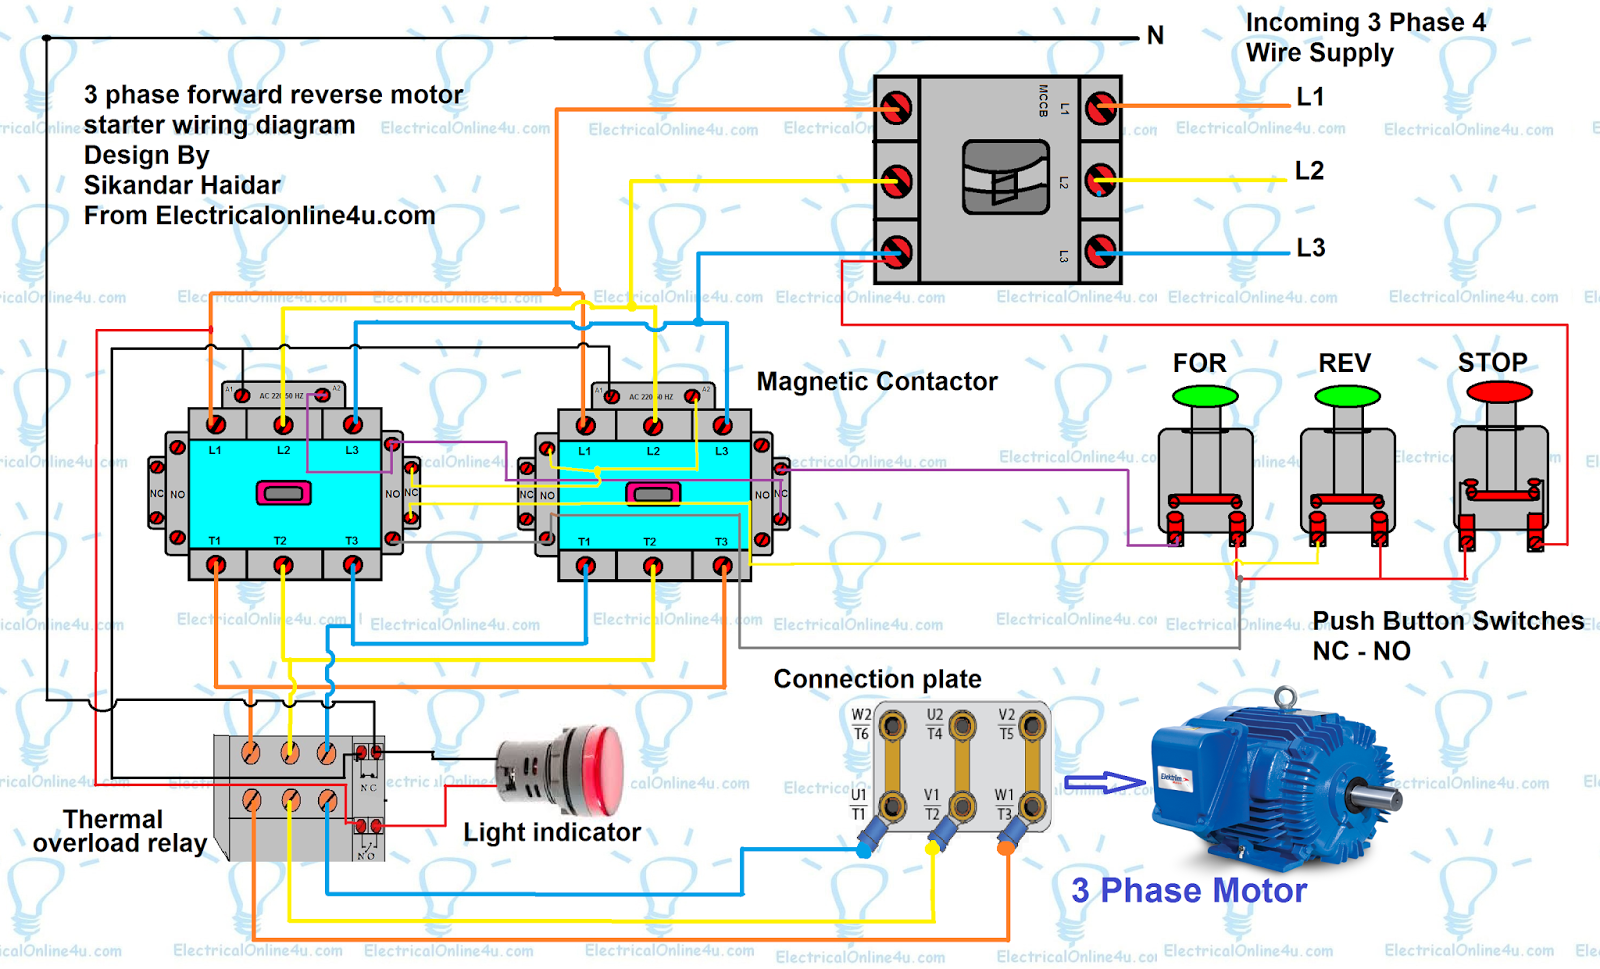 forward reverse motor control diagram [ 1600 x 969 Pixel ]